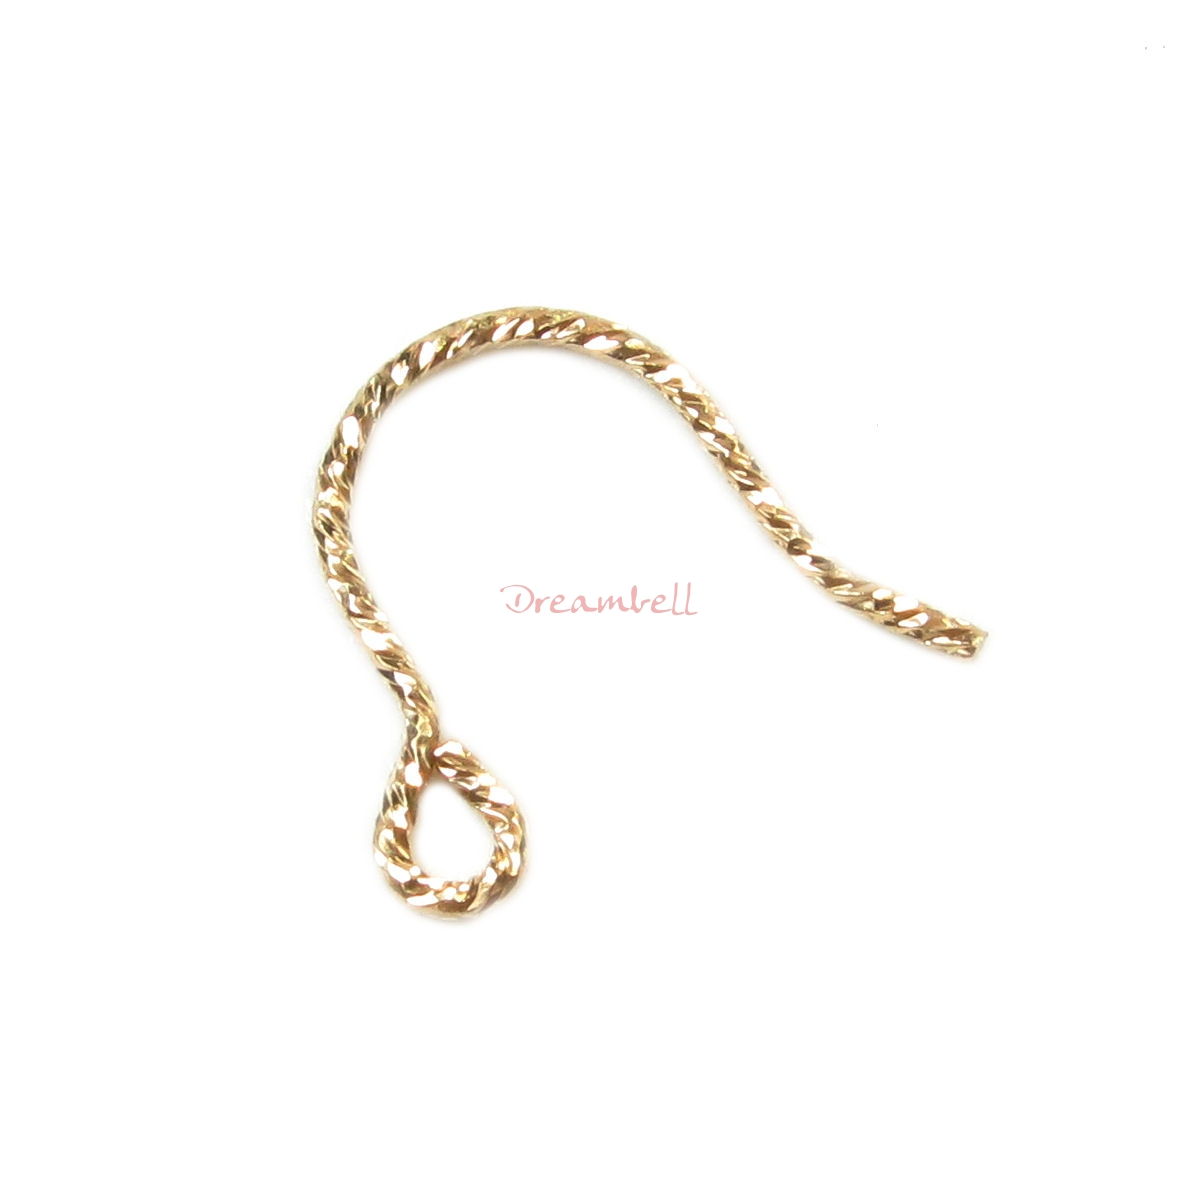 4pcs 14k Gold Filled Sparkle Ear Wire French Hook Earwires